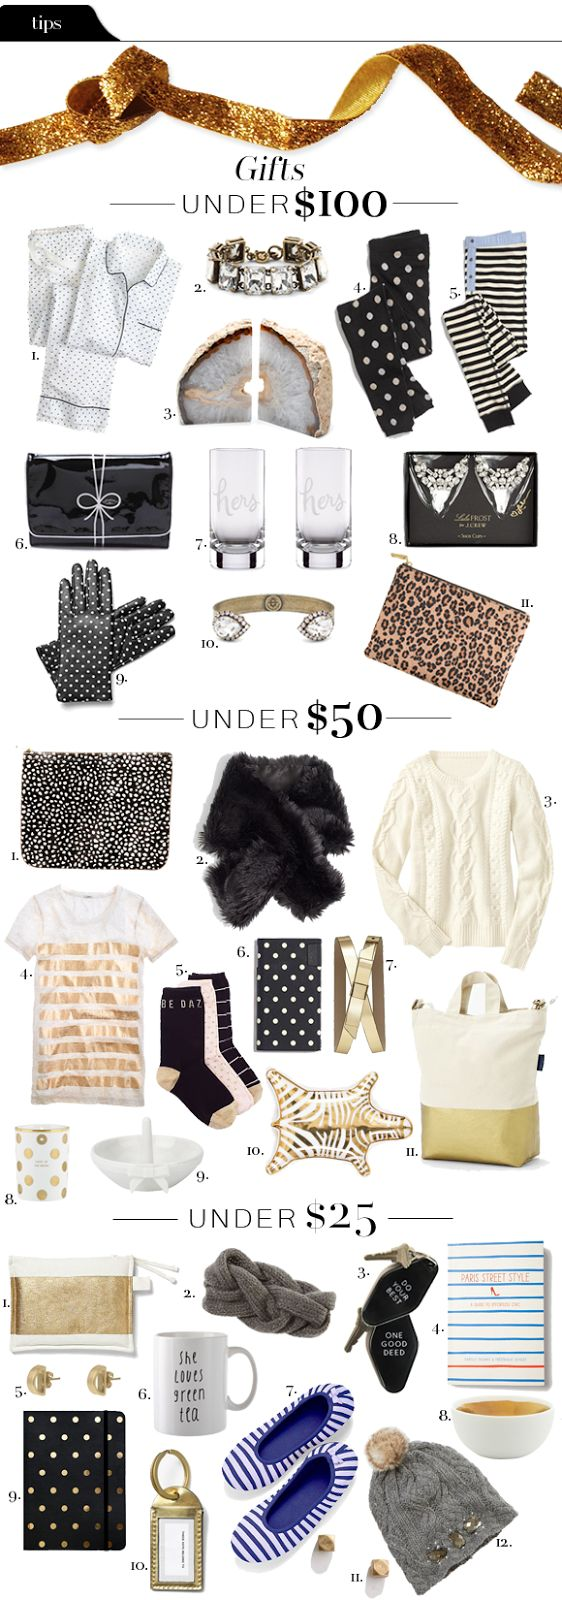 Tips File: Gifts under $100 - $50 - $25